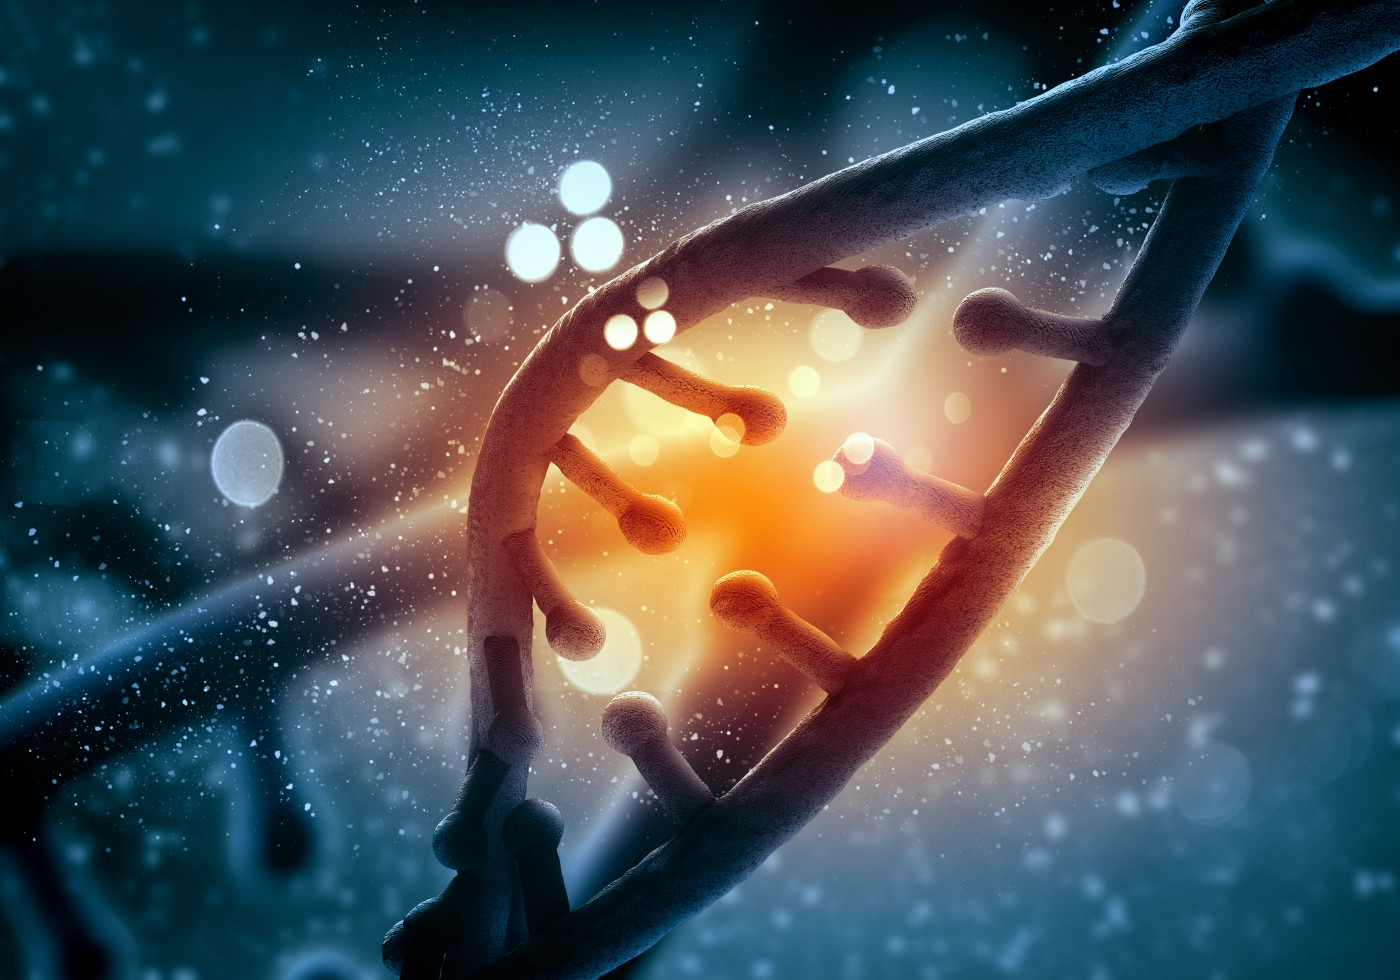 International Research Team Discovers a Gene Linked to the Common Variable Immunodeficiency Disorder